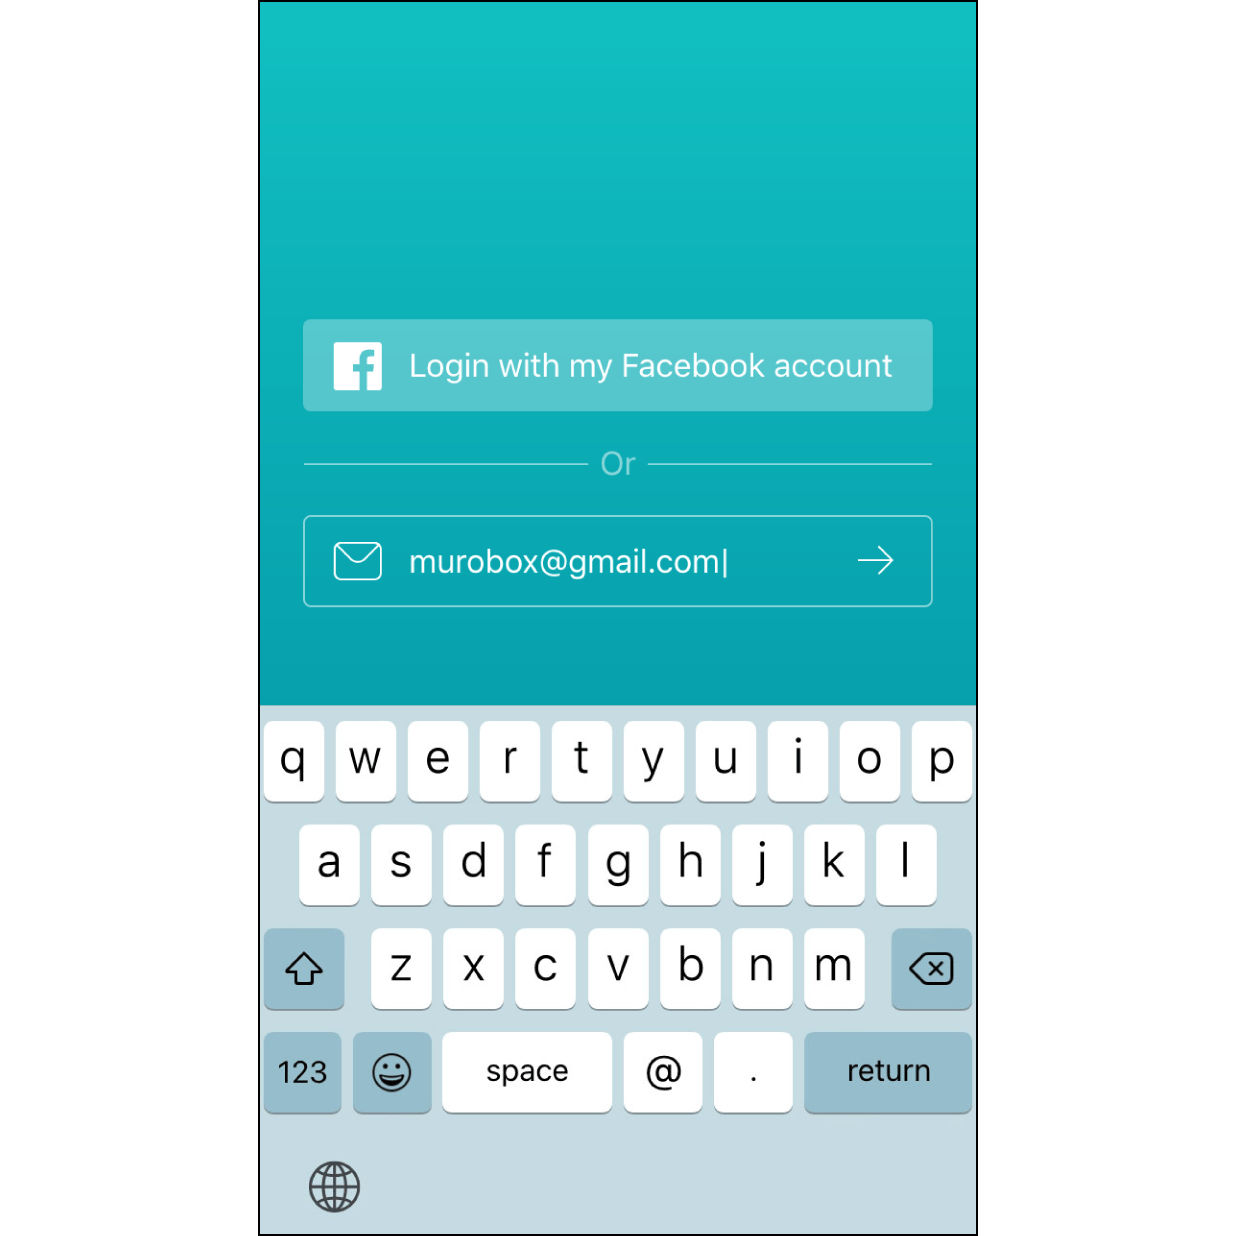 1. Log in with Your EmailEnter the email address that you wish to use for log in this app.